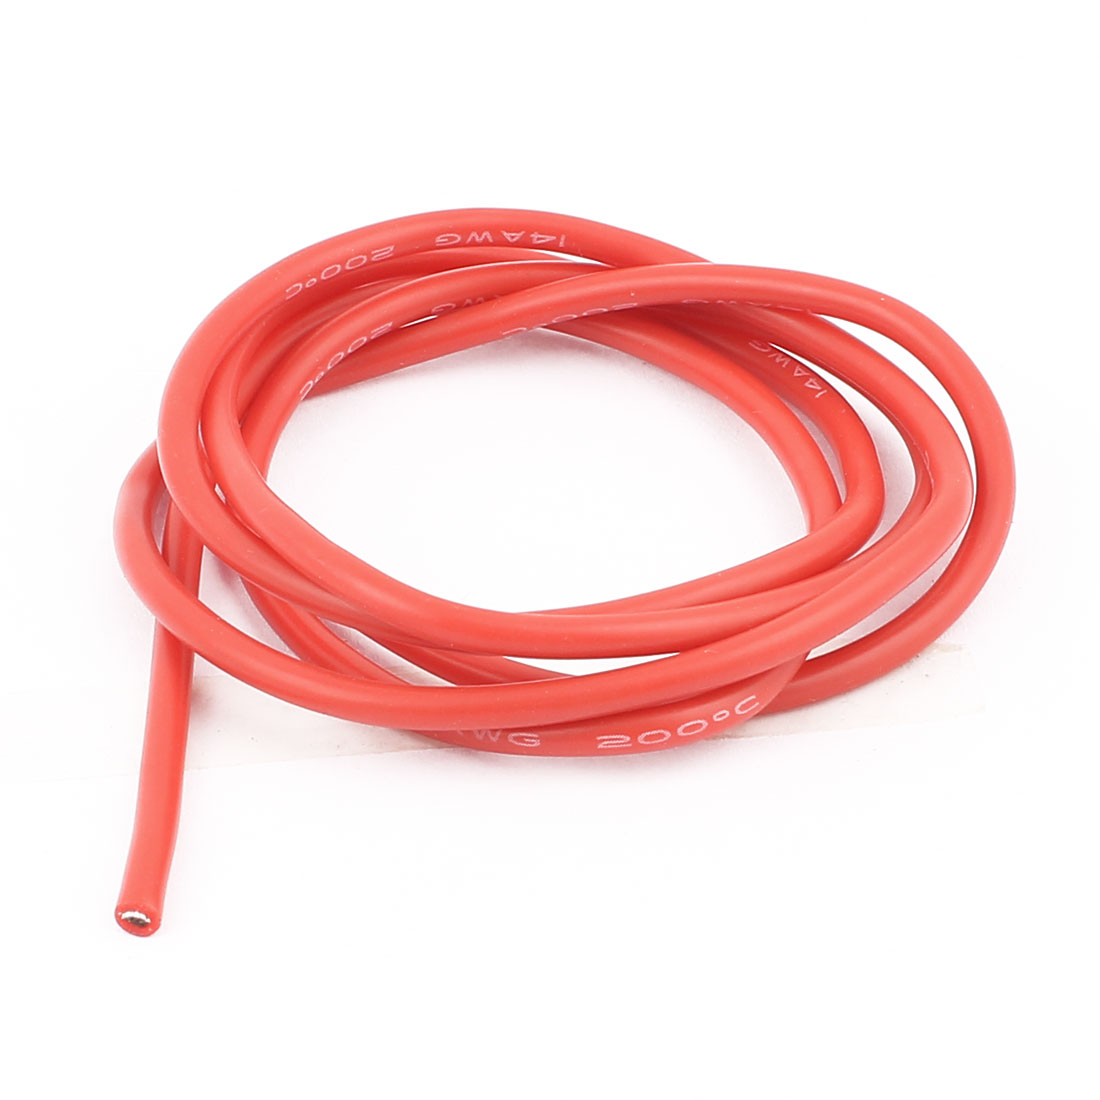 1M 14AWG Electric Copper Core Flexible Silicone Wire Cable Red